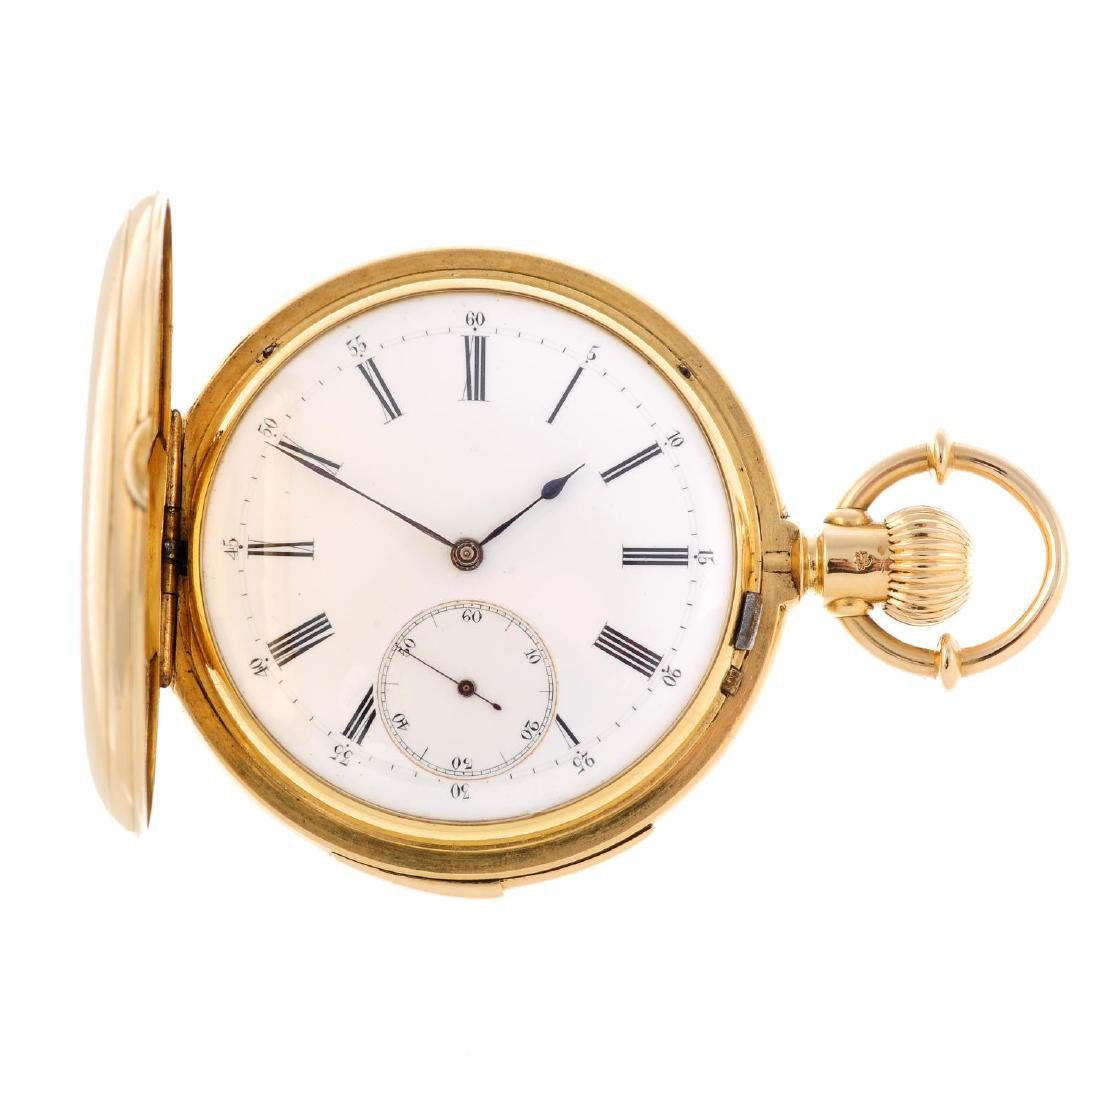 A full hunter quarter repeater pocket watch. Yellow